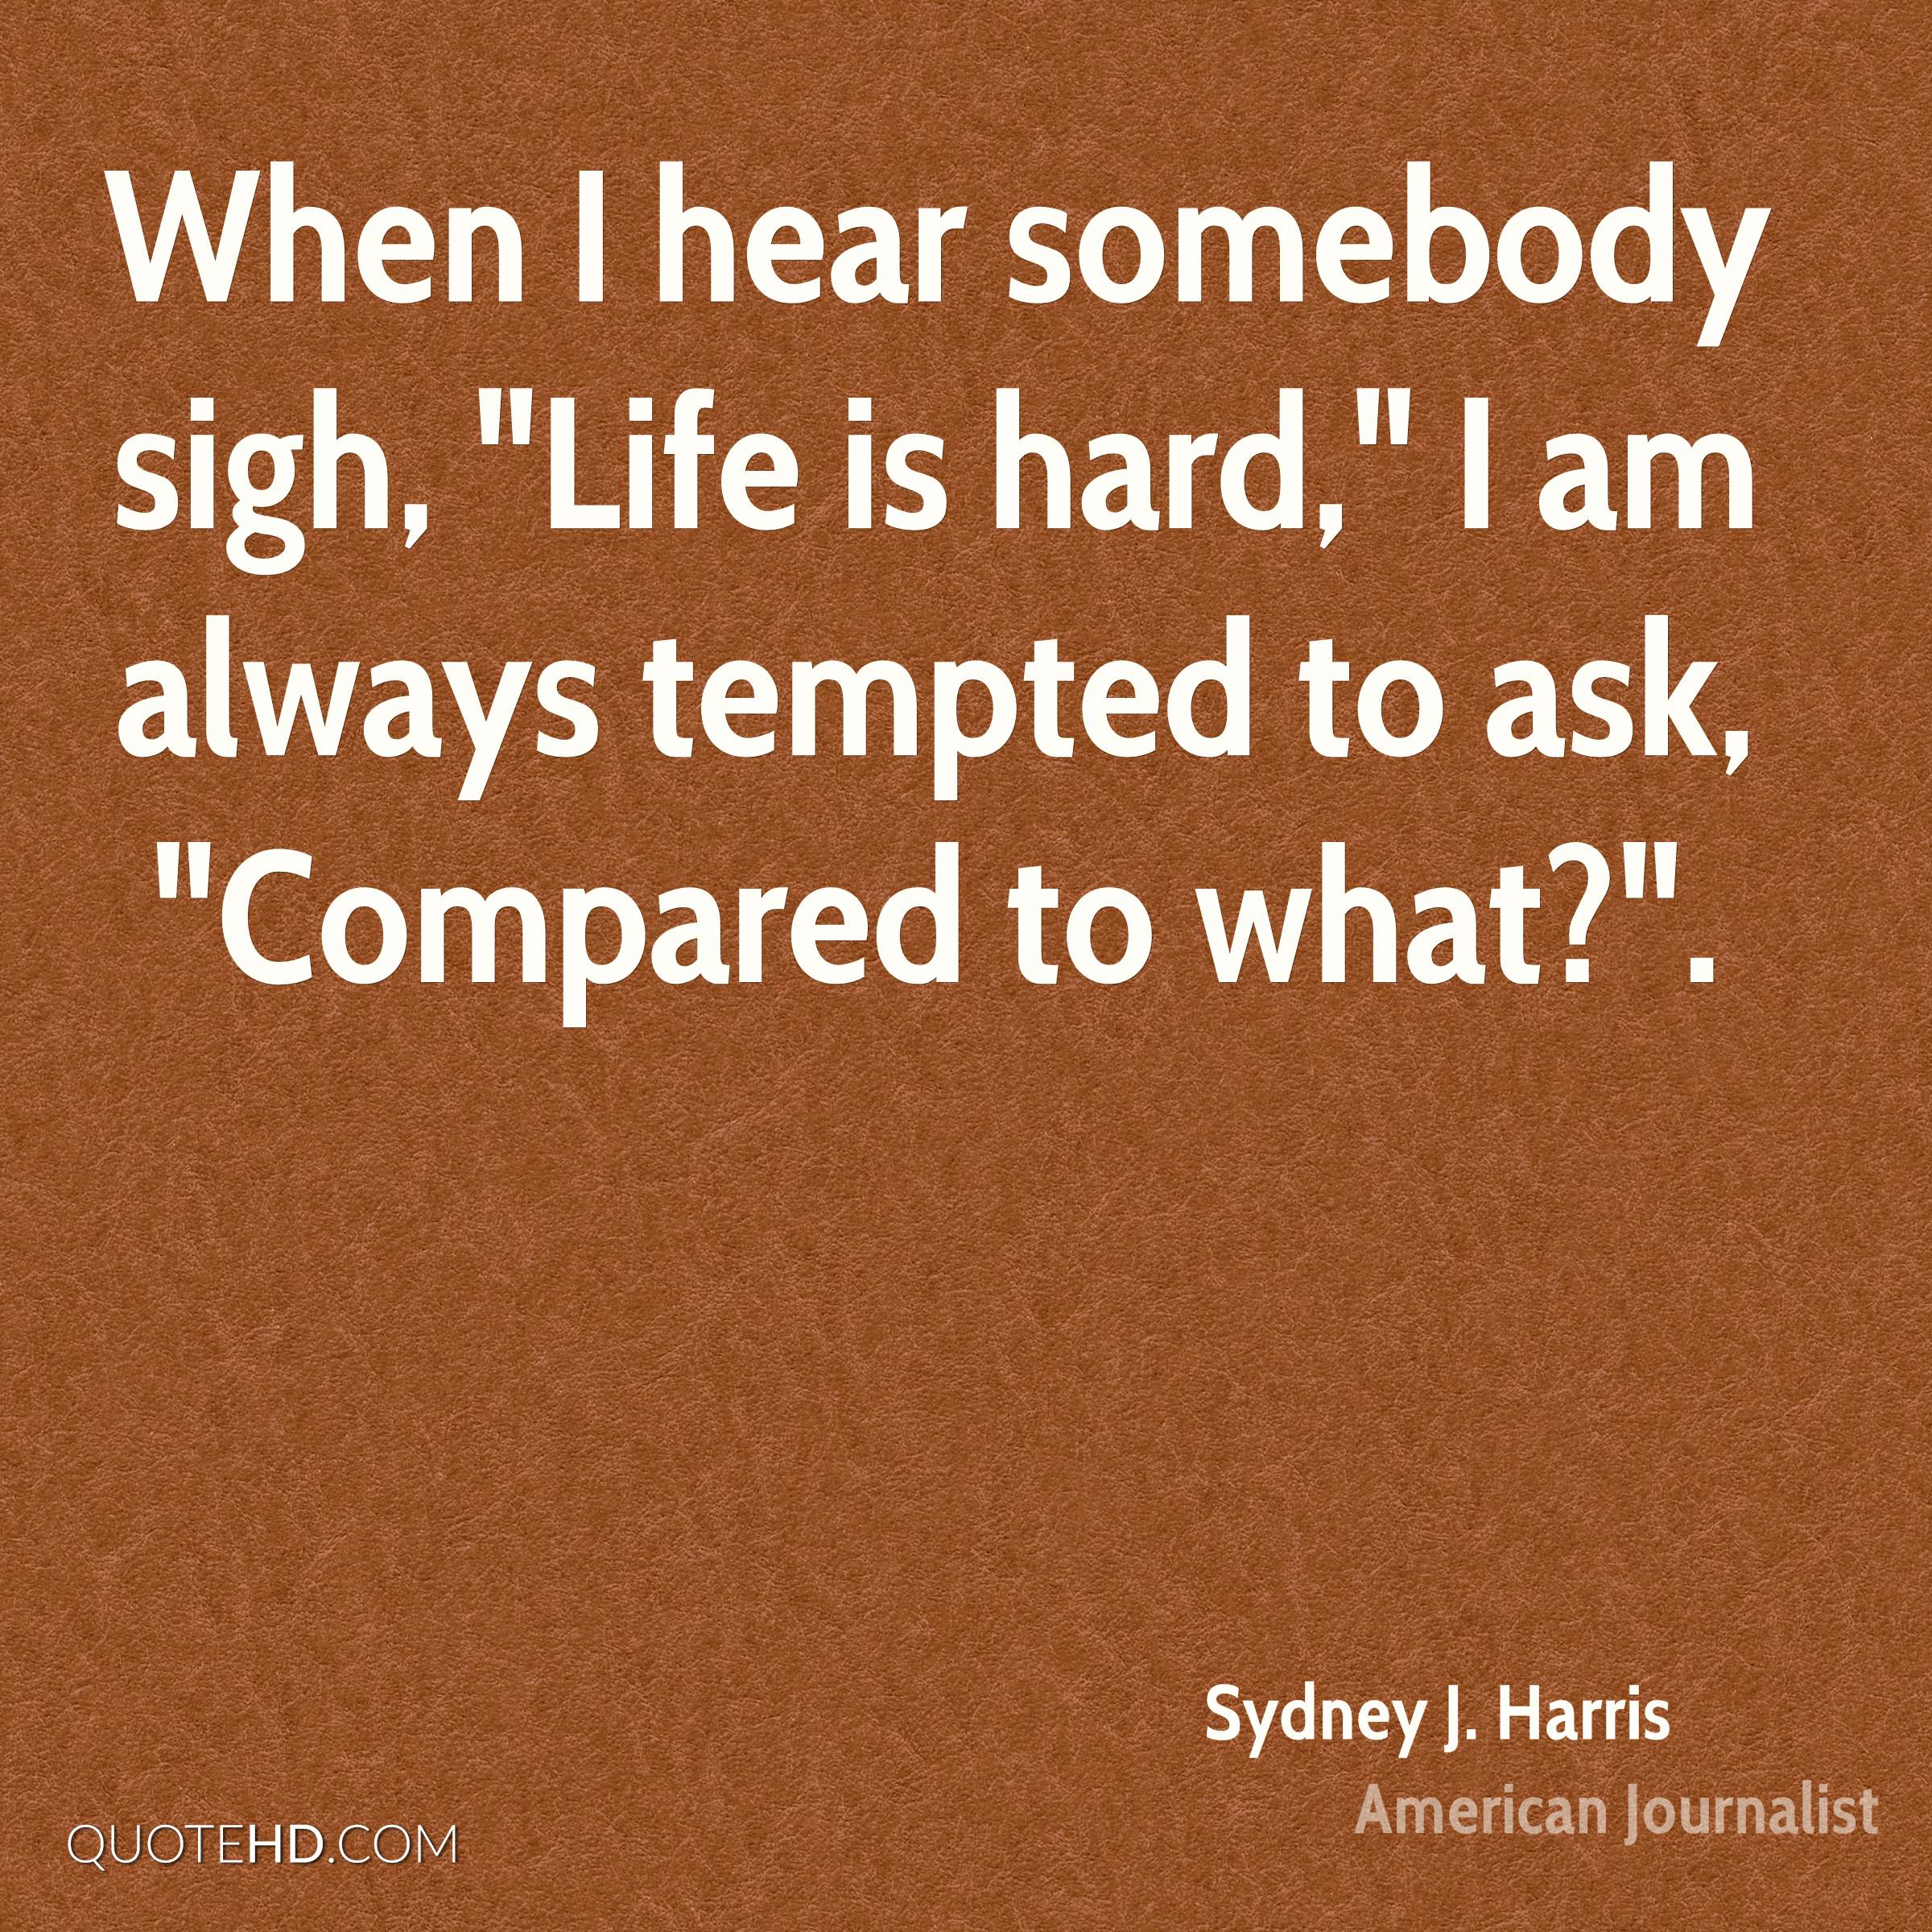 """When I hear somebody sigh, """"Life is hard,"""" I am always tempted to ask, """"Compared to what?""""."""